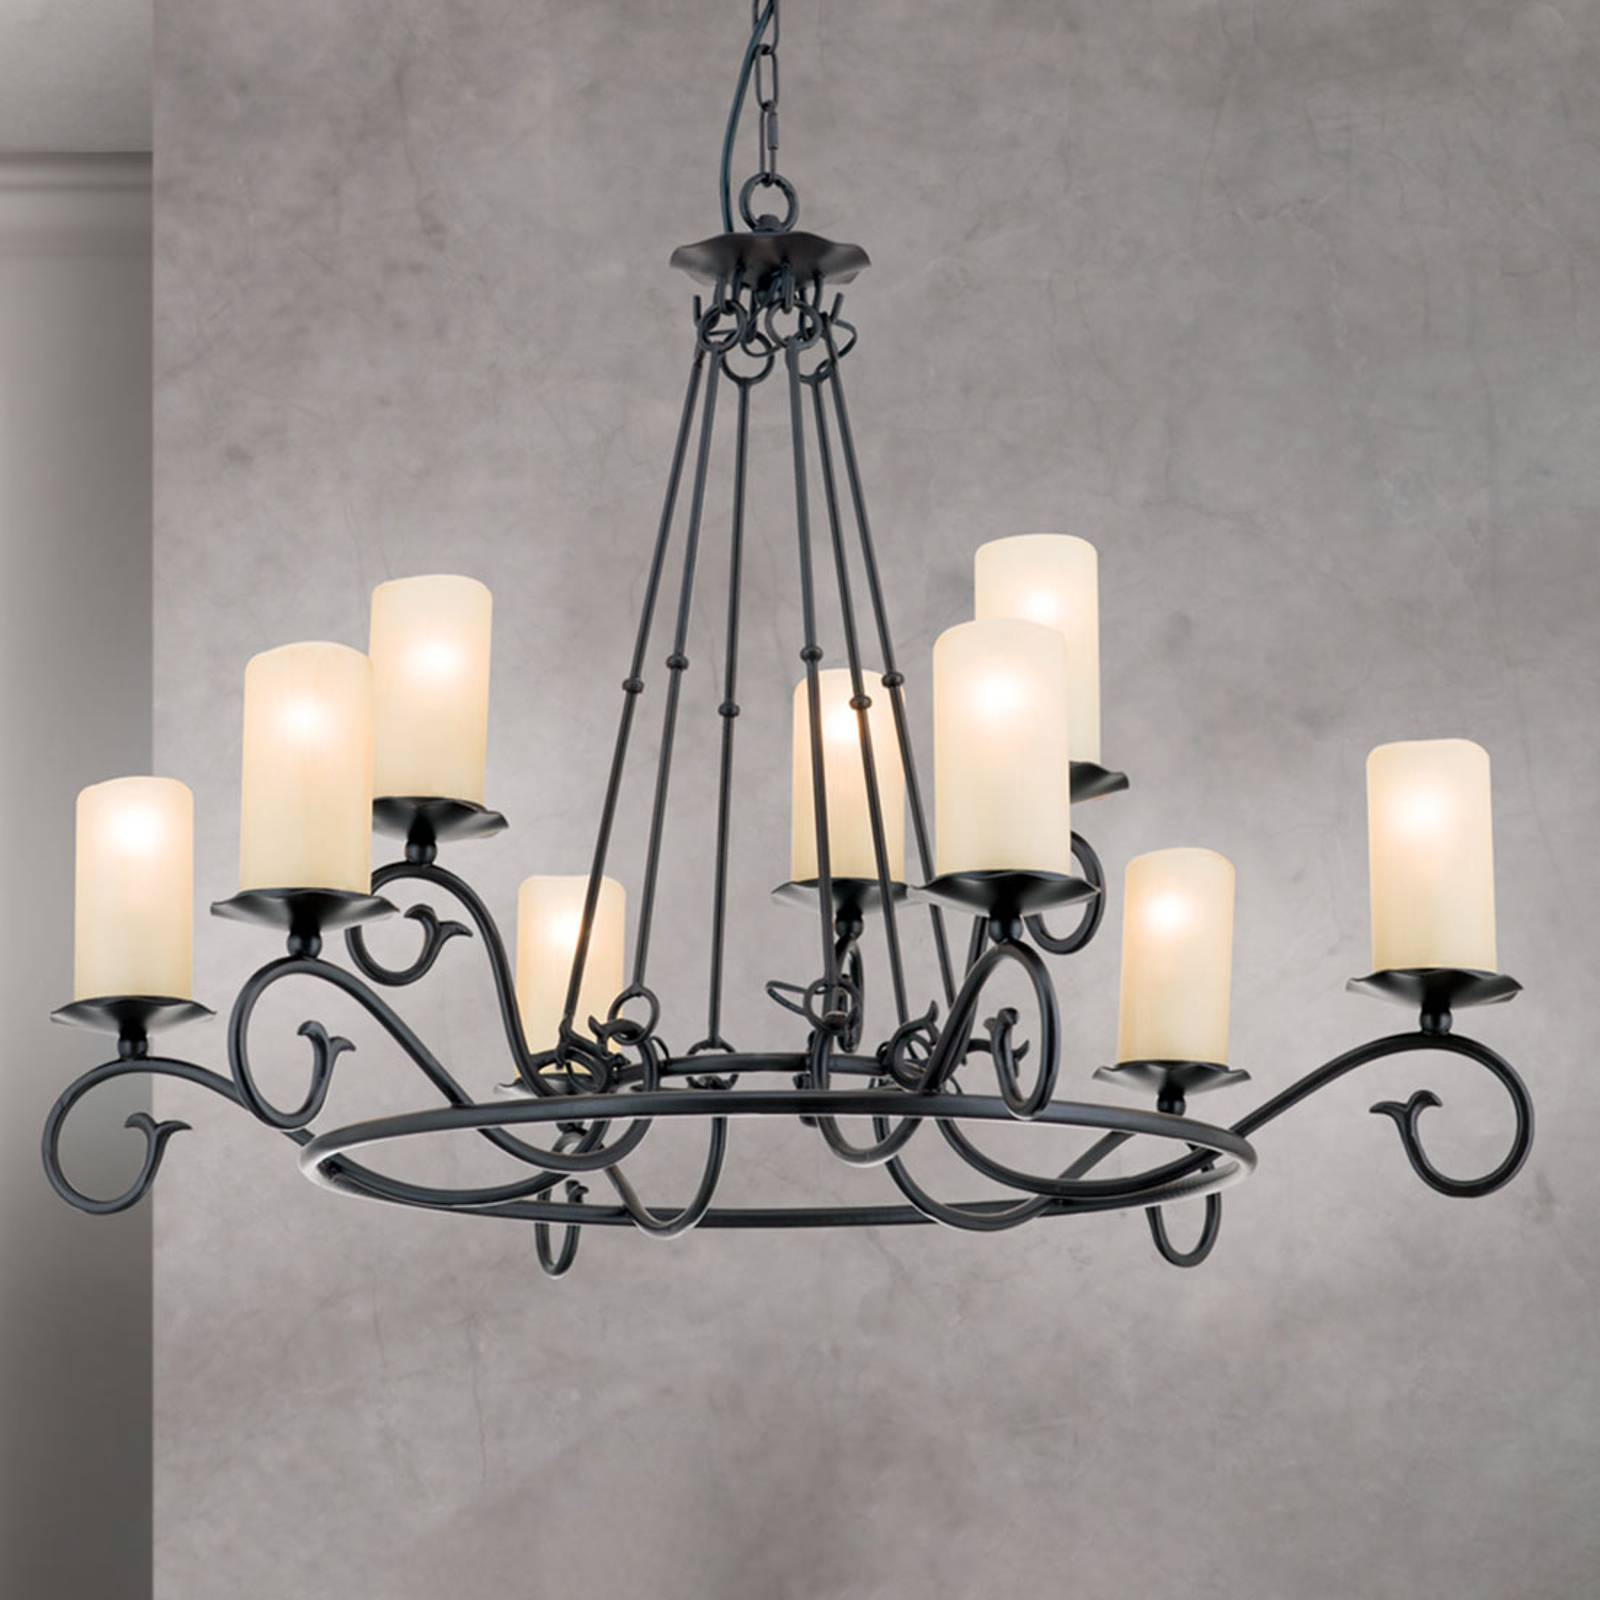 Bente Chandelier Impressive Rustic Style from Orion